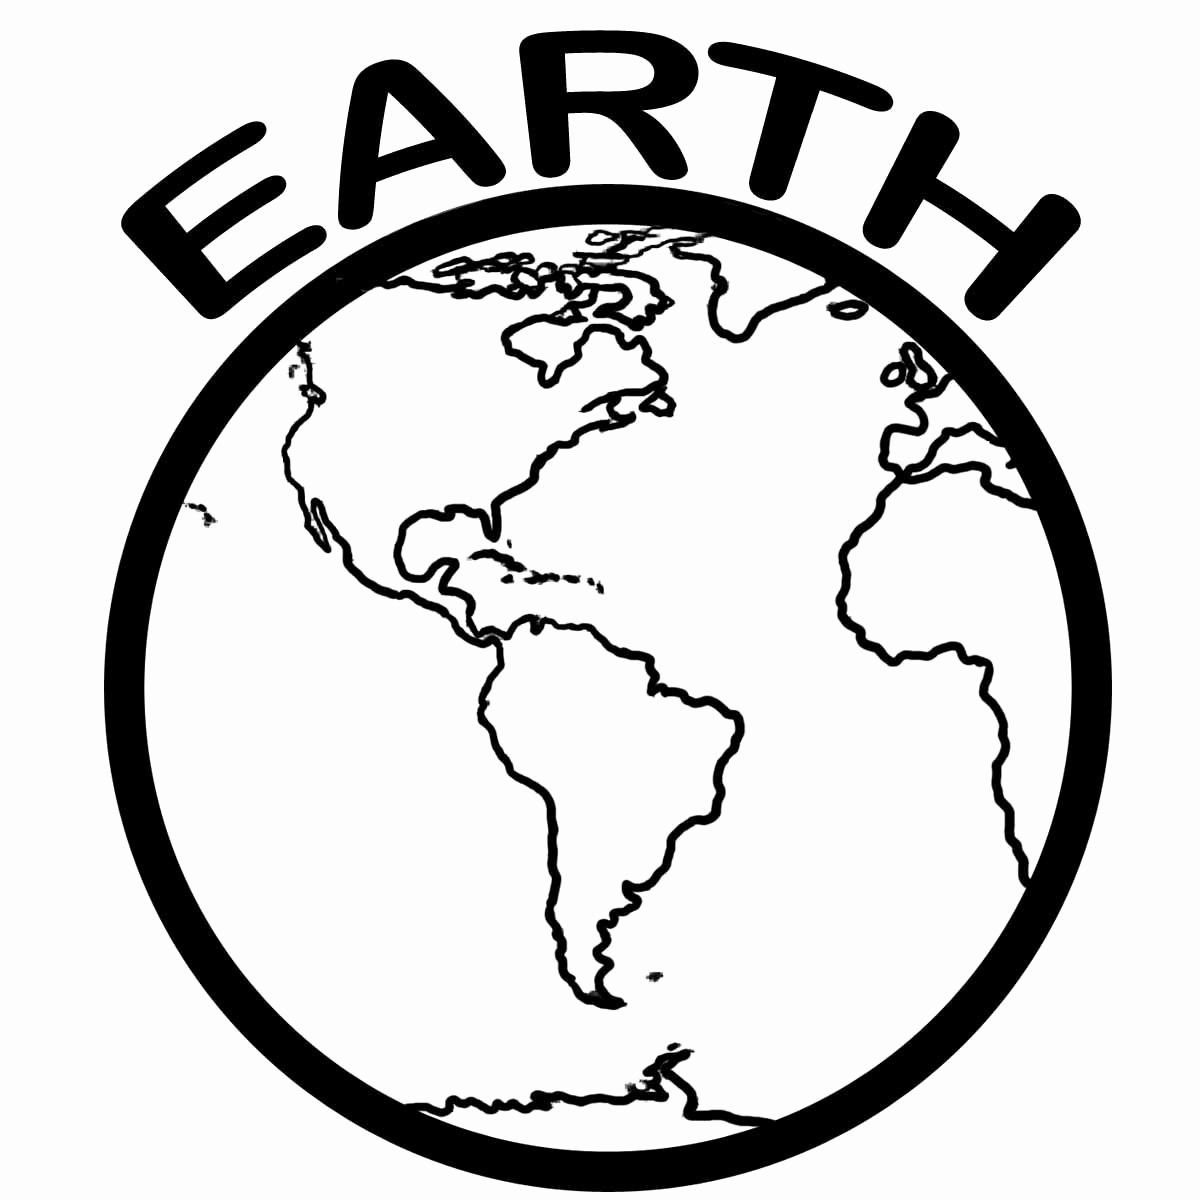 33 Planet Earth Coloring Page In 2020 Earth Coloring Pages Planet Coloring Pages Earth Day Coloring Pages